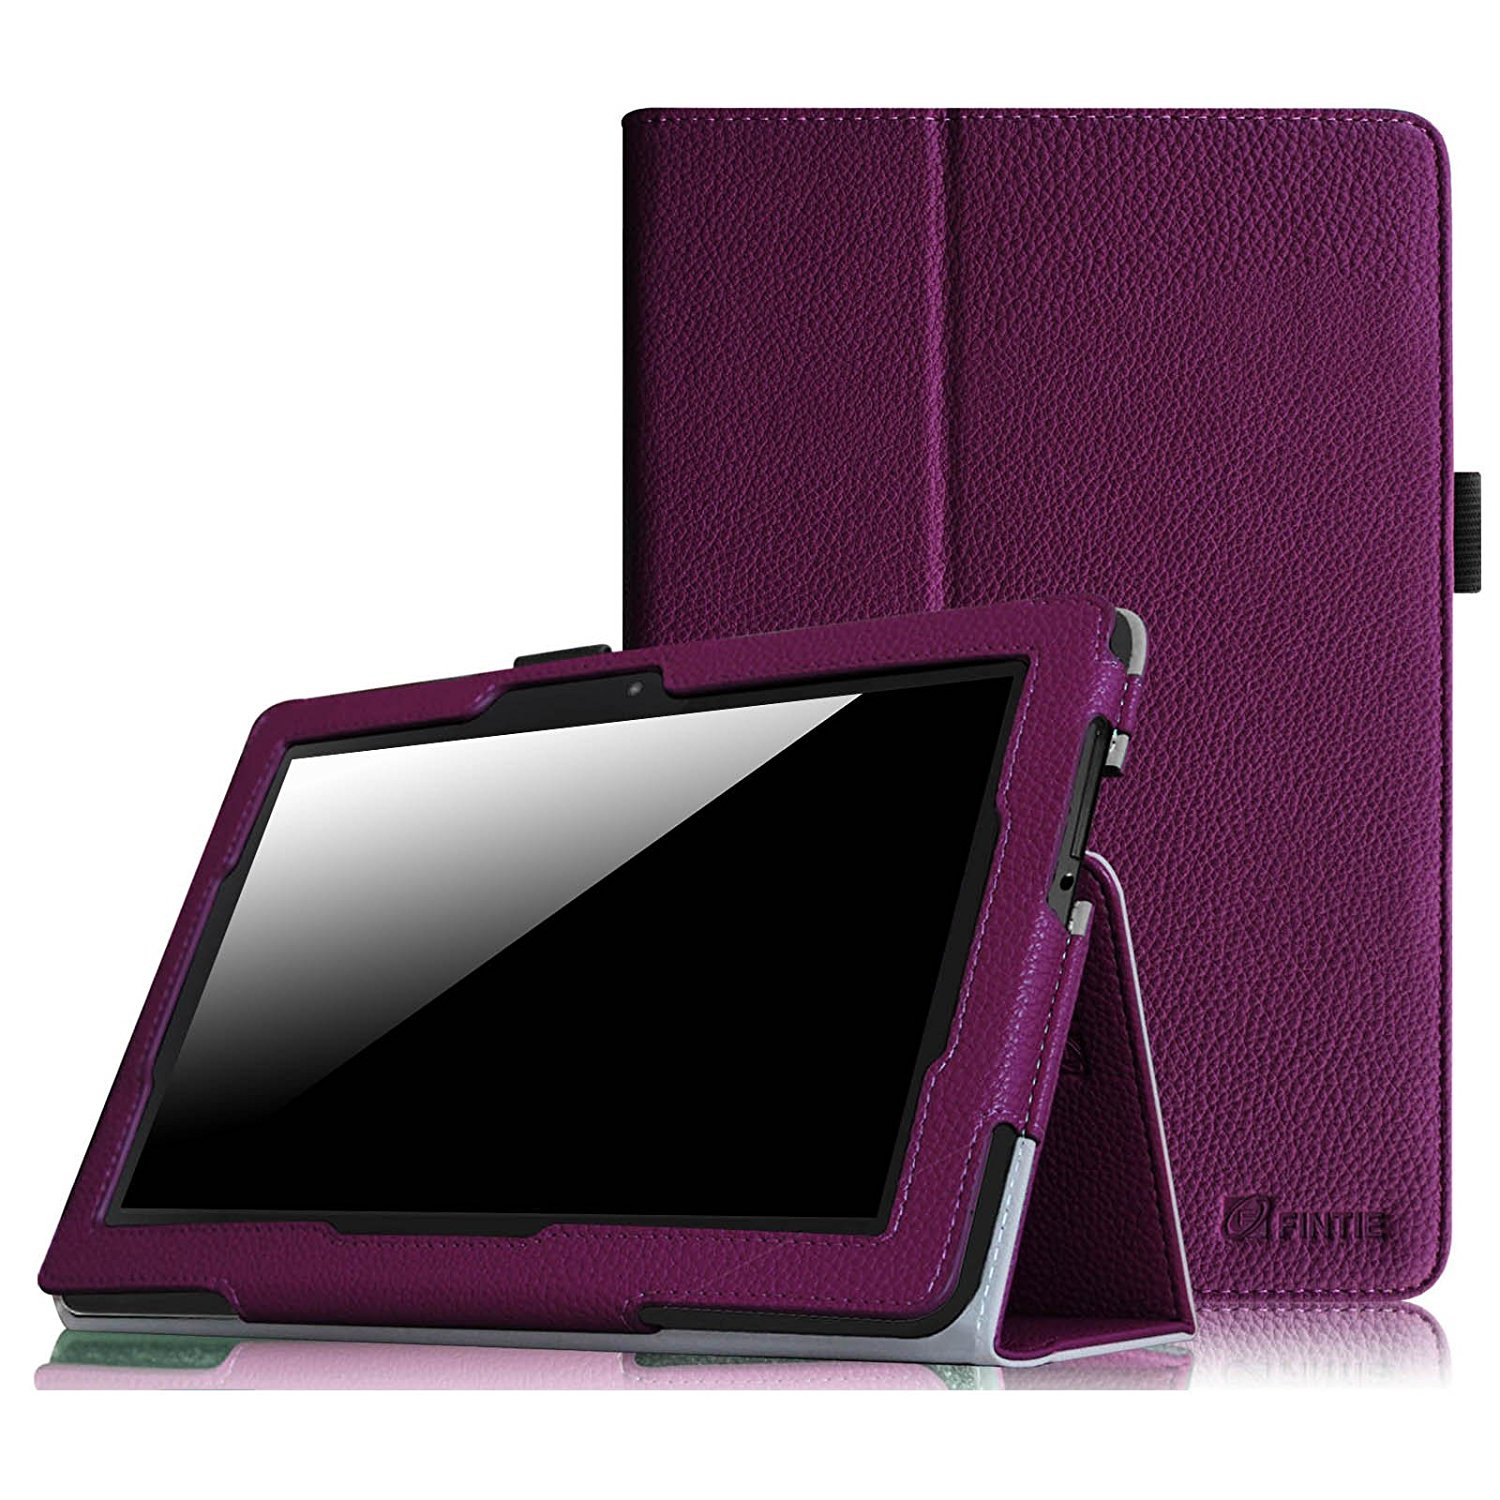 """Fintie Folio Case for Kindle Fire HDX 8.9 - Slim Fit Leather Cover (will fit Amazon Kindle Fire HDX 8.9"""" Tablet 2014 4th Generation and 2013 3rd Generation) - Purple"""